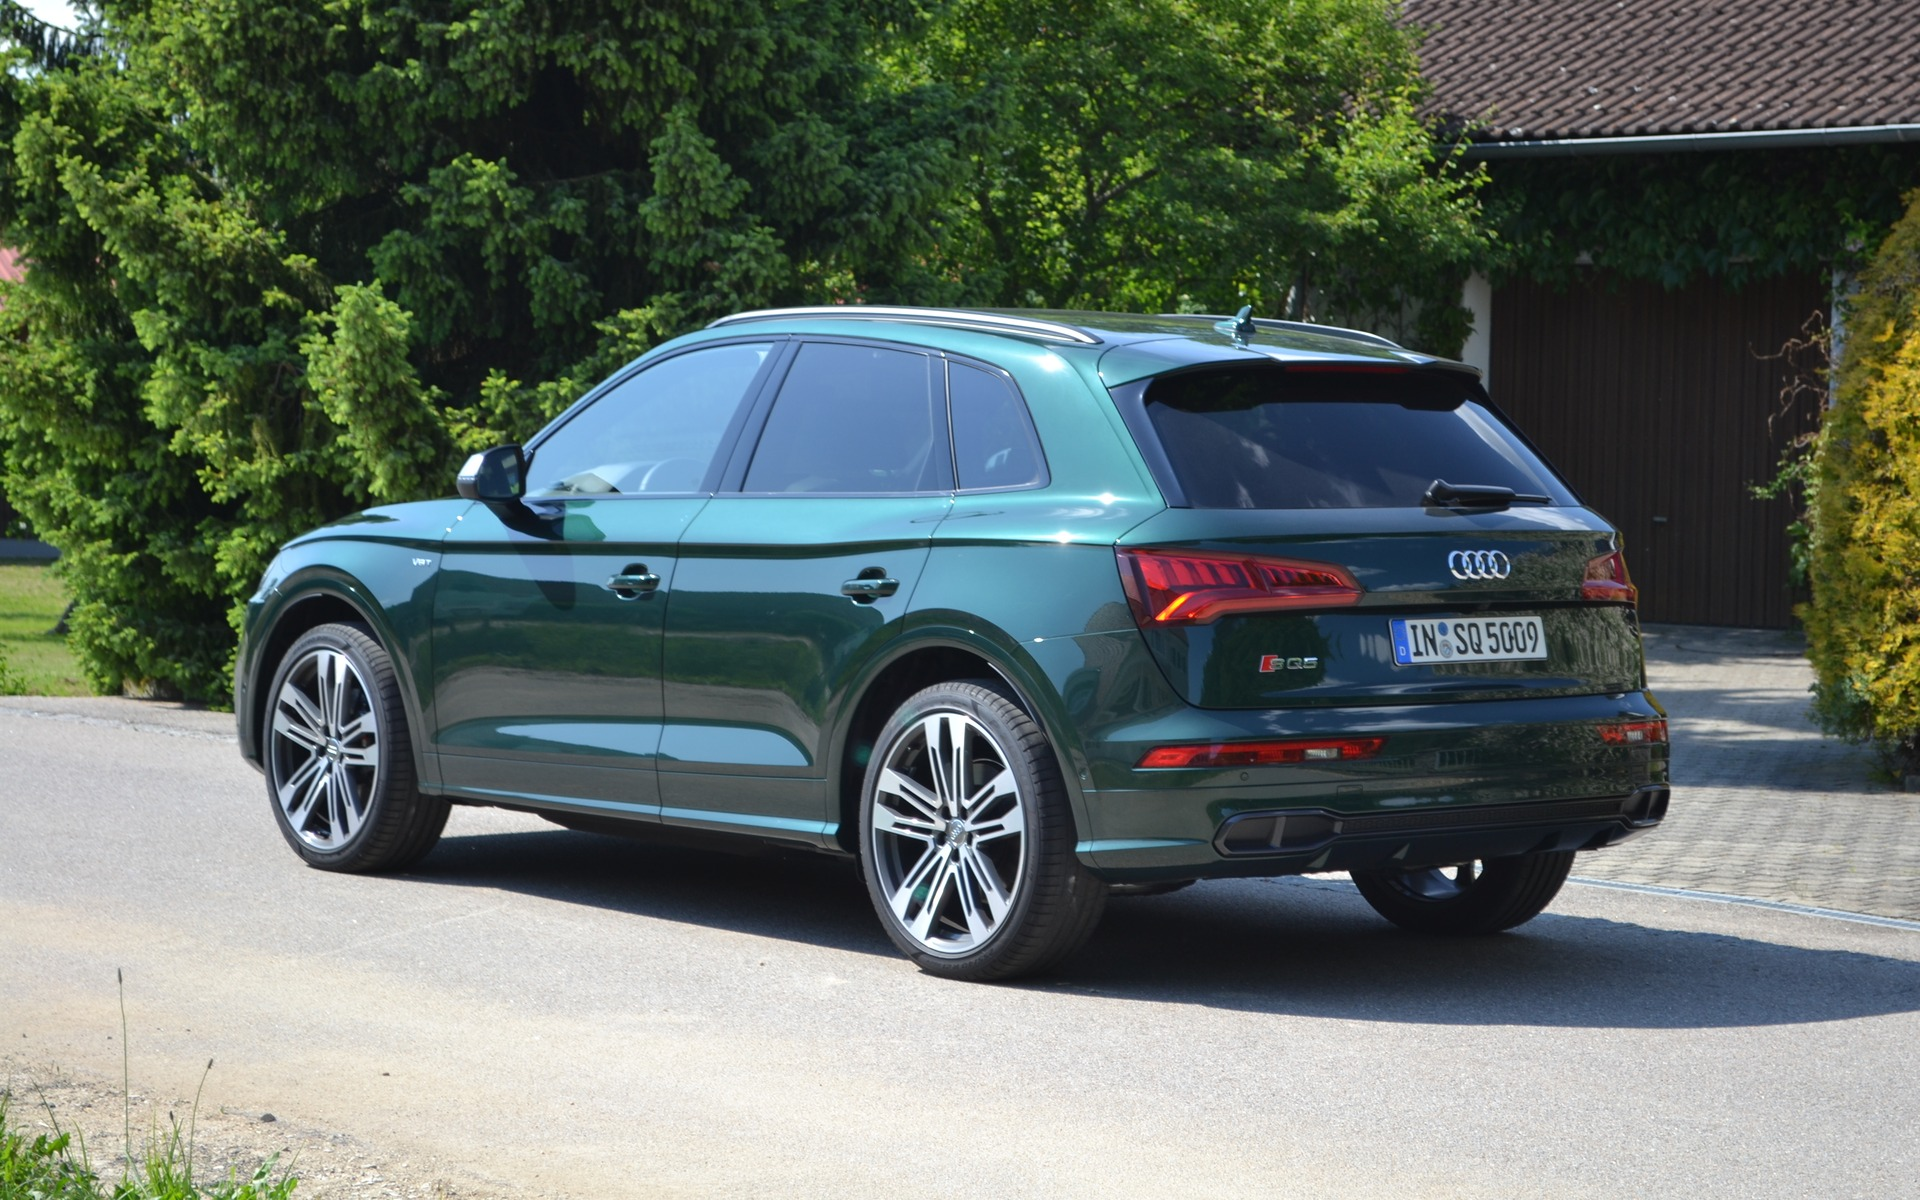 2018 Audi Sq5 Thrilling Within Reason 6 31